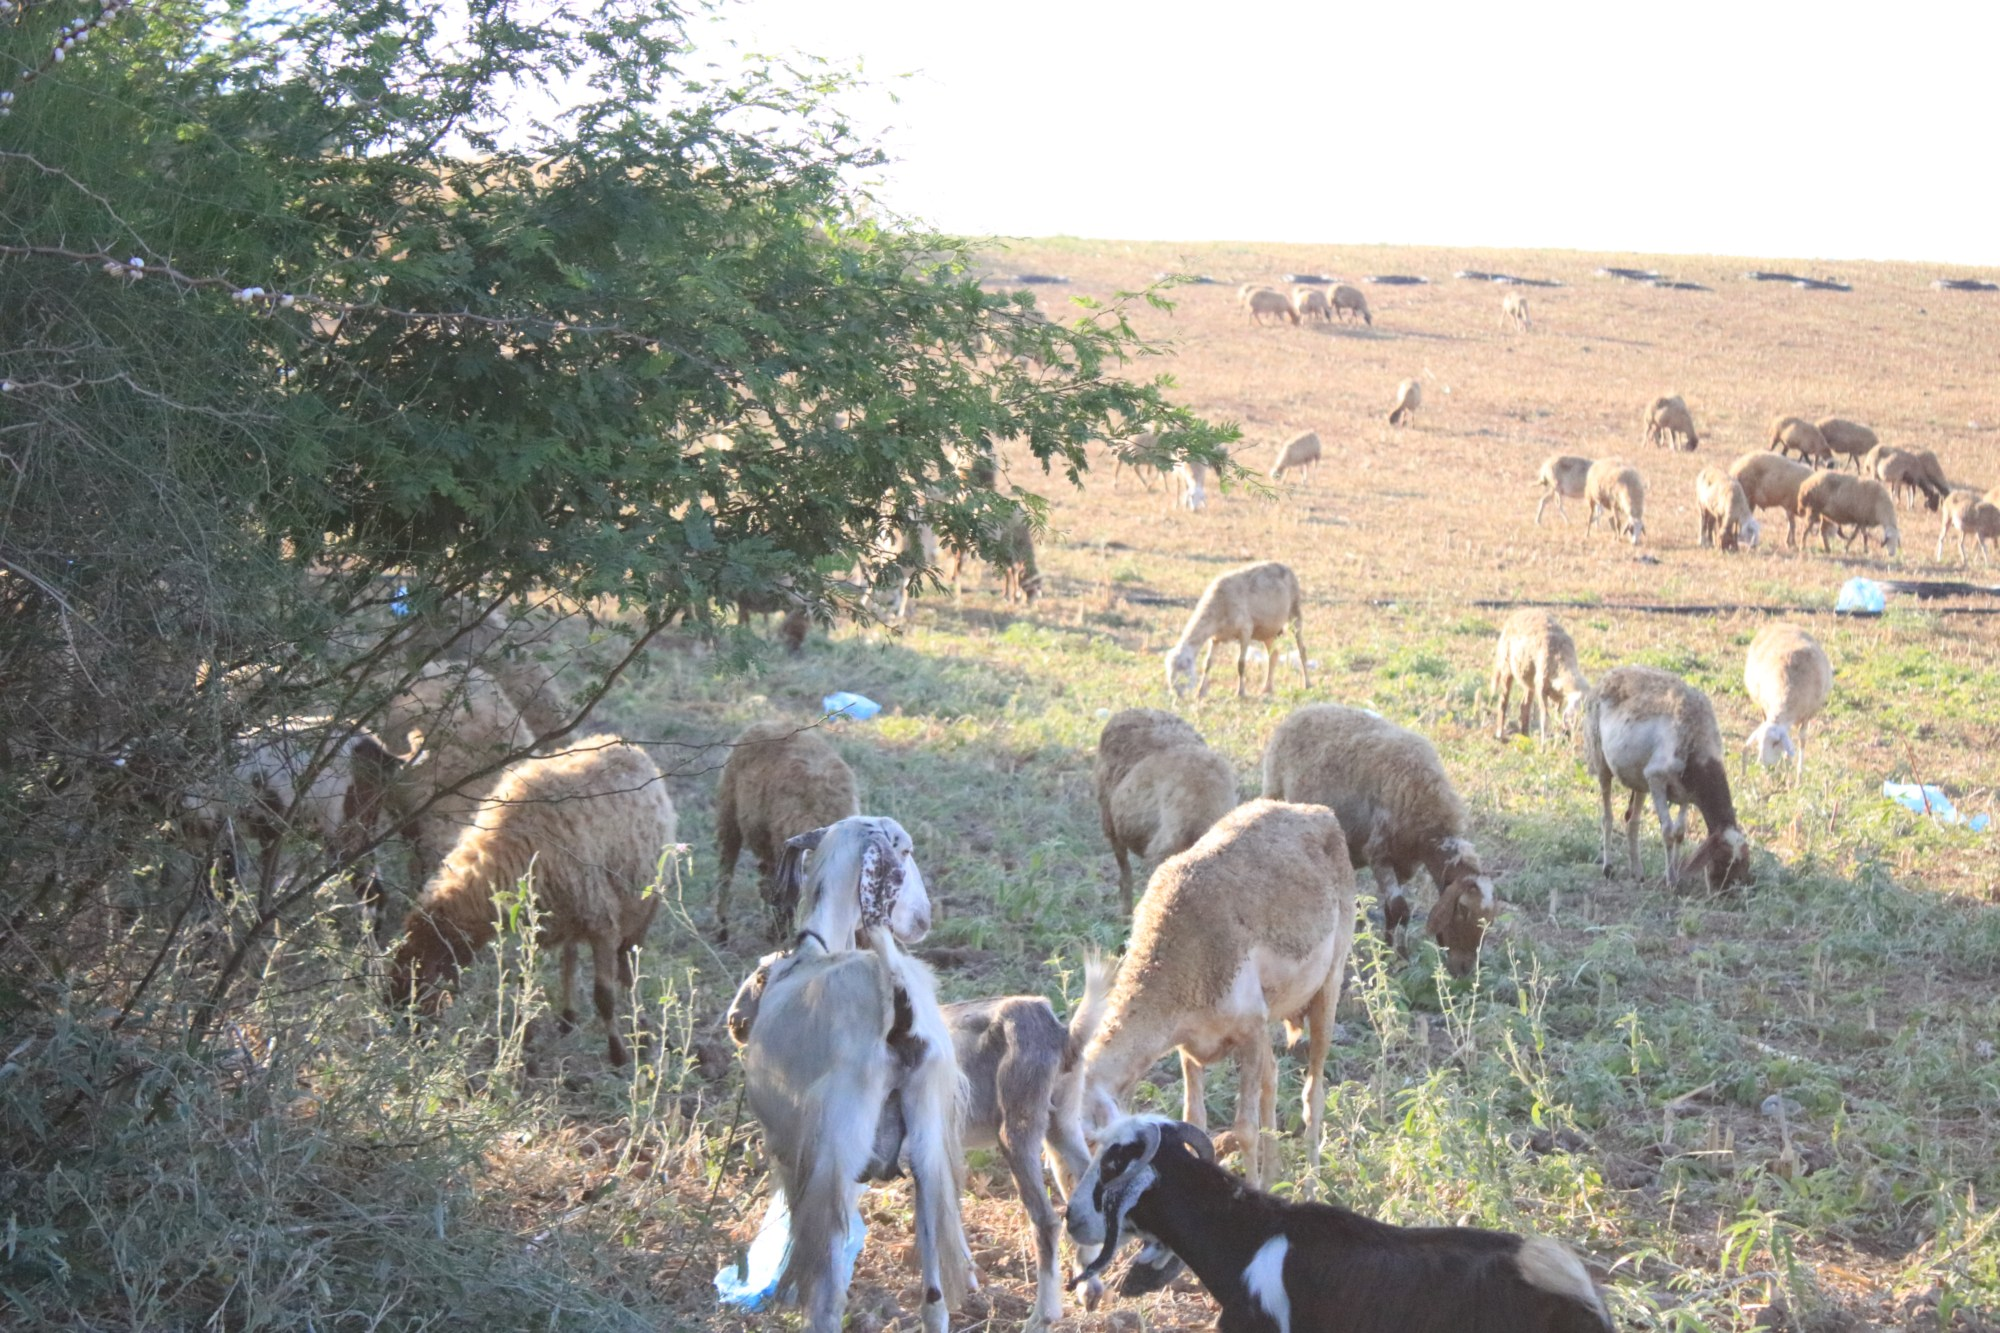 The herbicides not only hurt crops, but also livestock grazing in the affected areas (MEE/Abdallh al-Naamy)